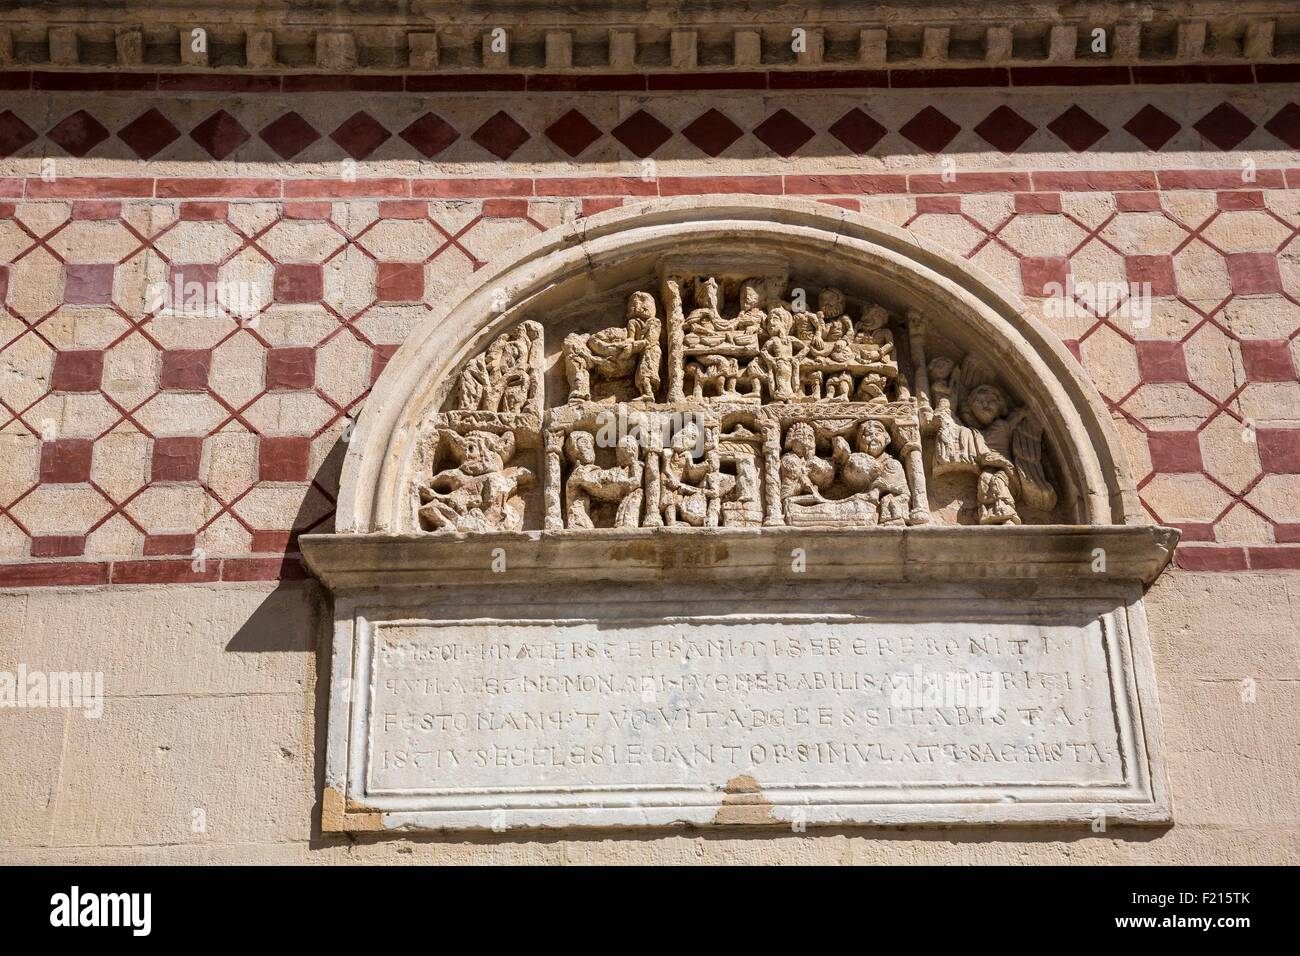 France, Rhone, Lyon, historical site, bas-relief, St Martin d'Ainay Basilica former abbey church of Romanic - Stock Image